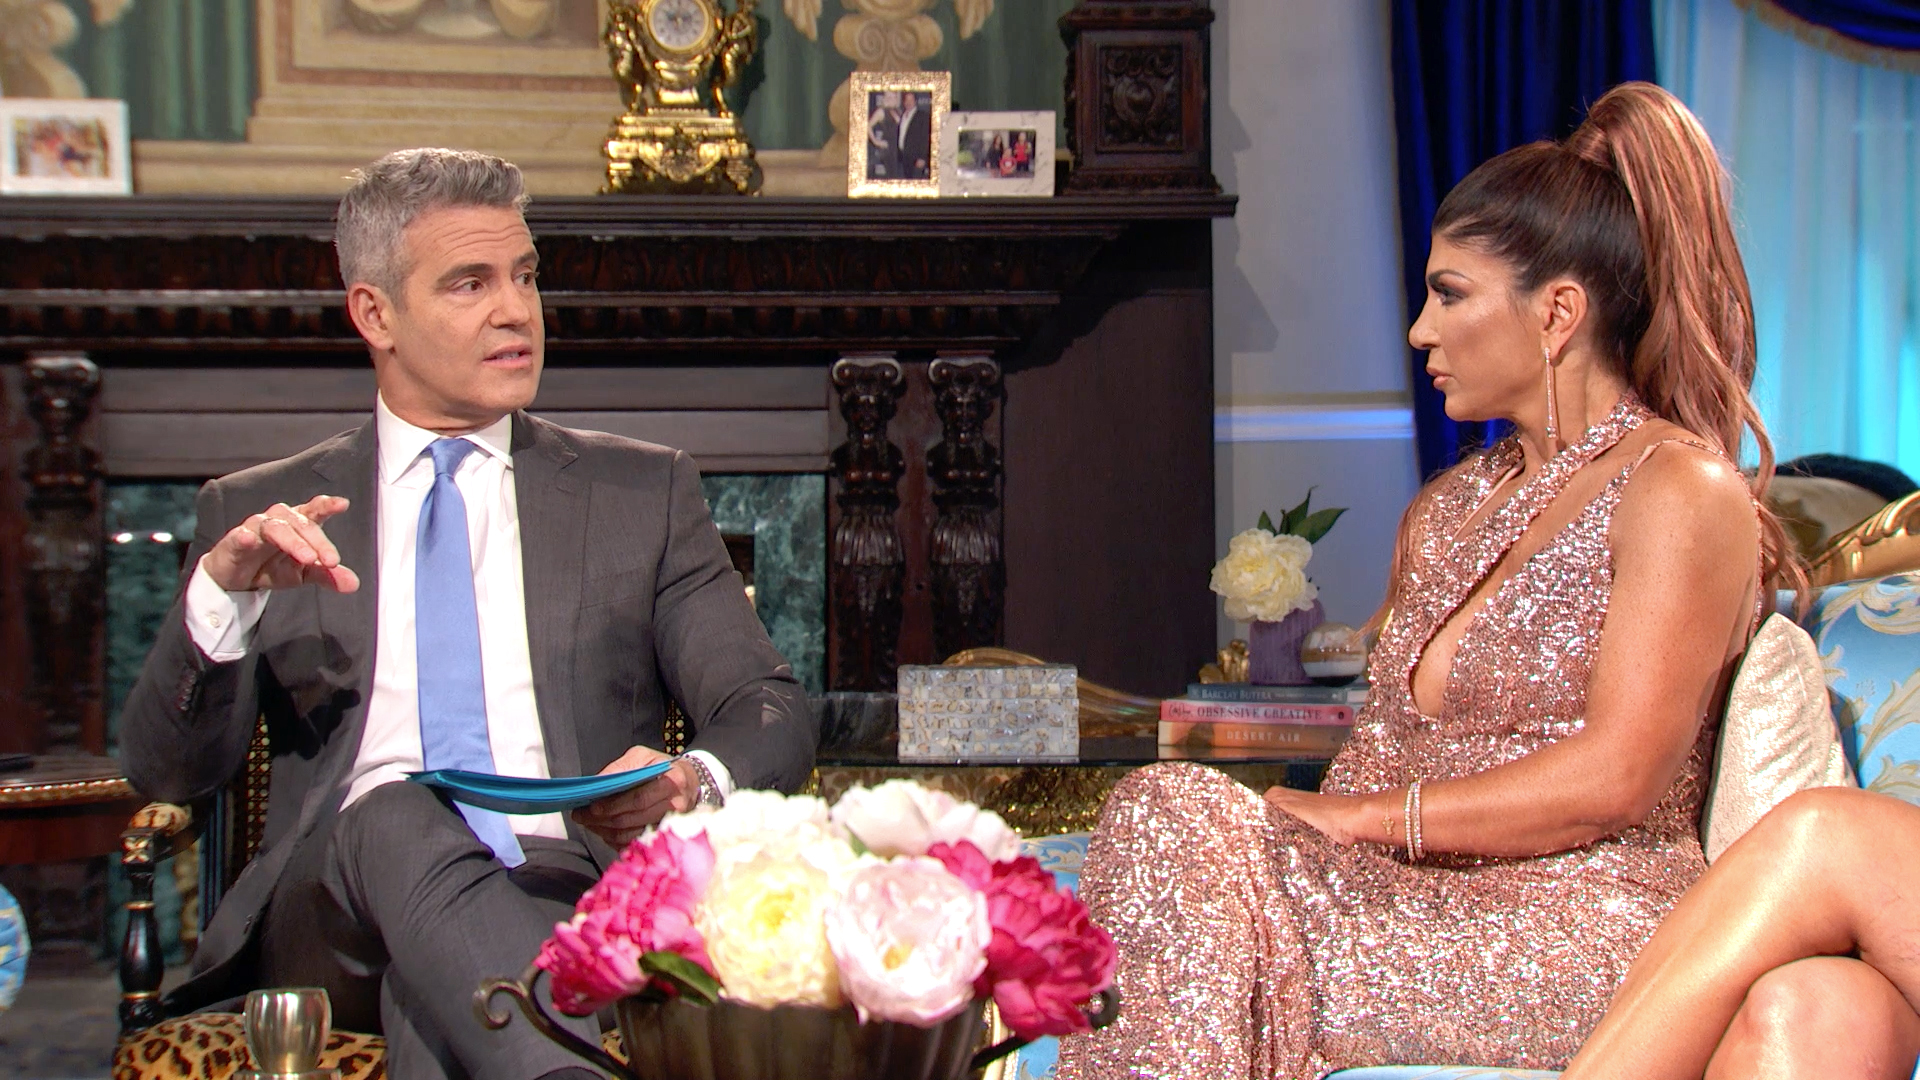 Teresa Giudice Weighs in on Joe's Pending Deportation